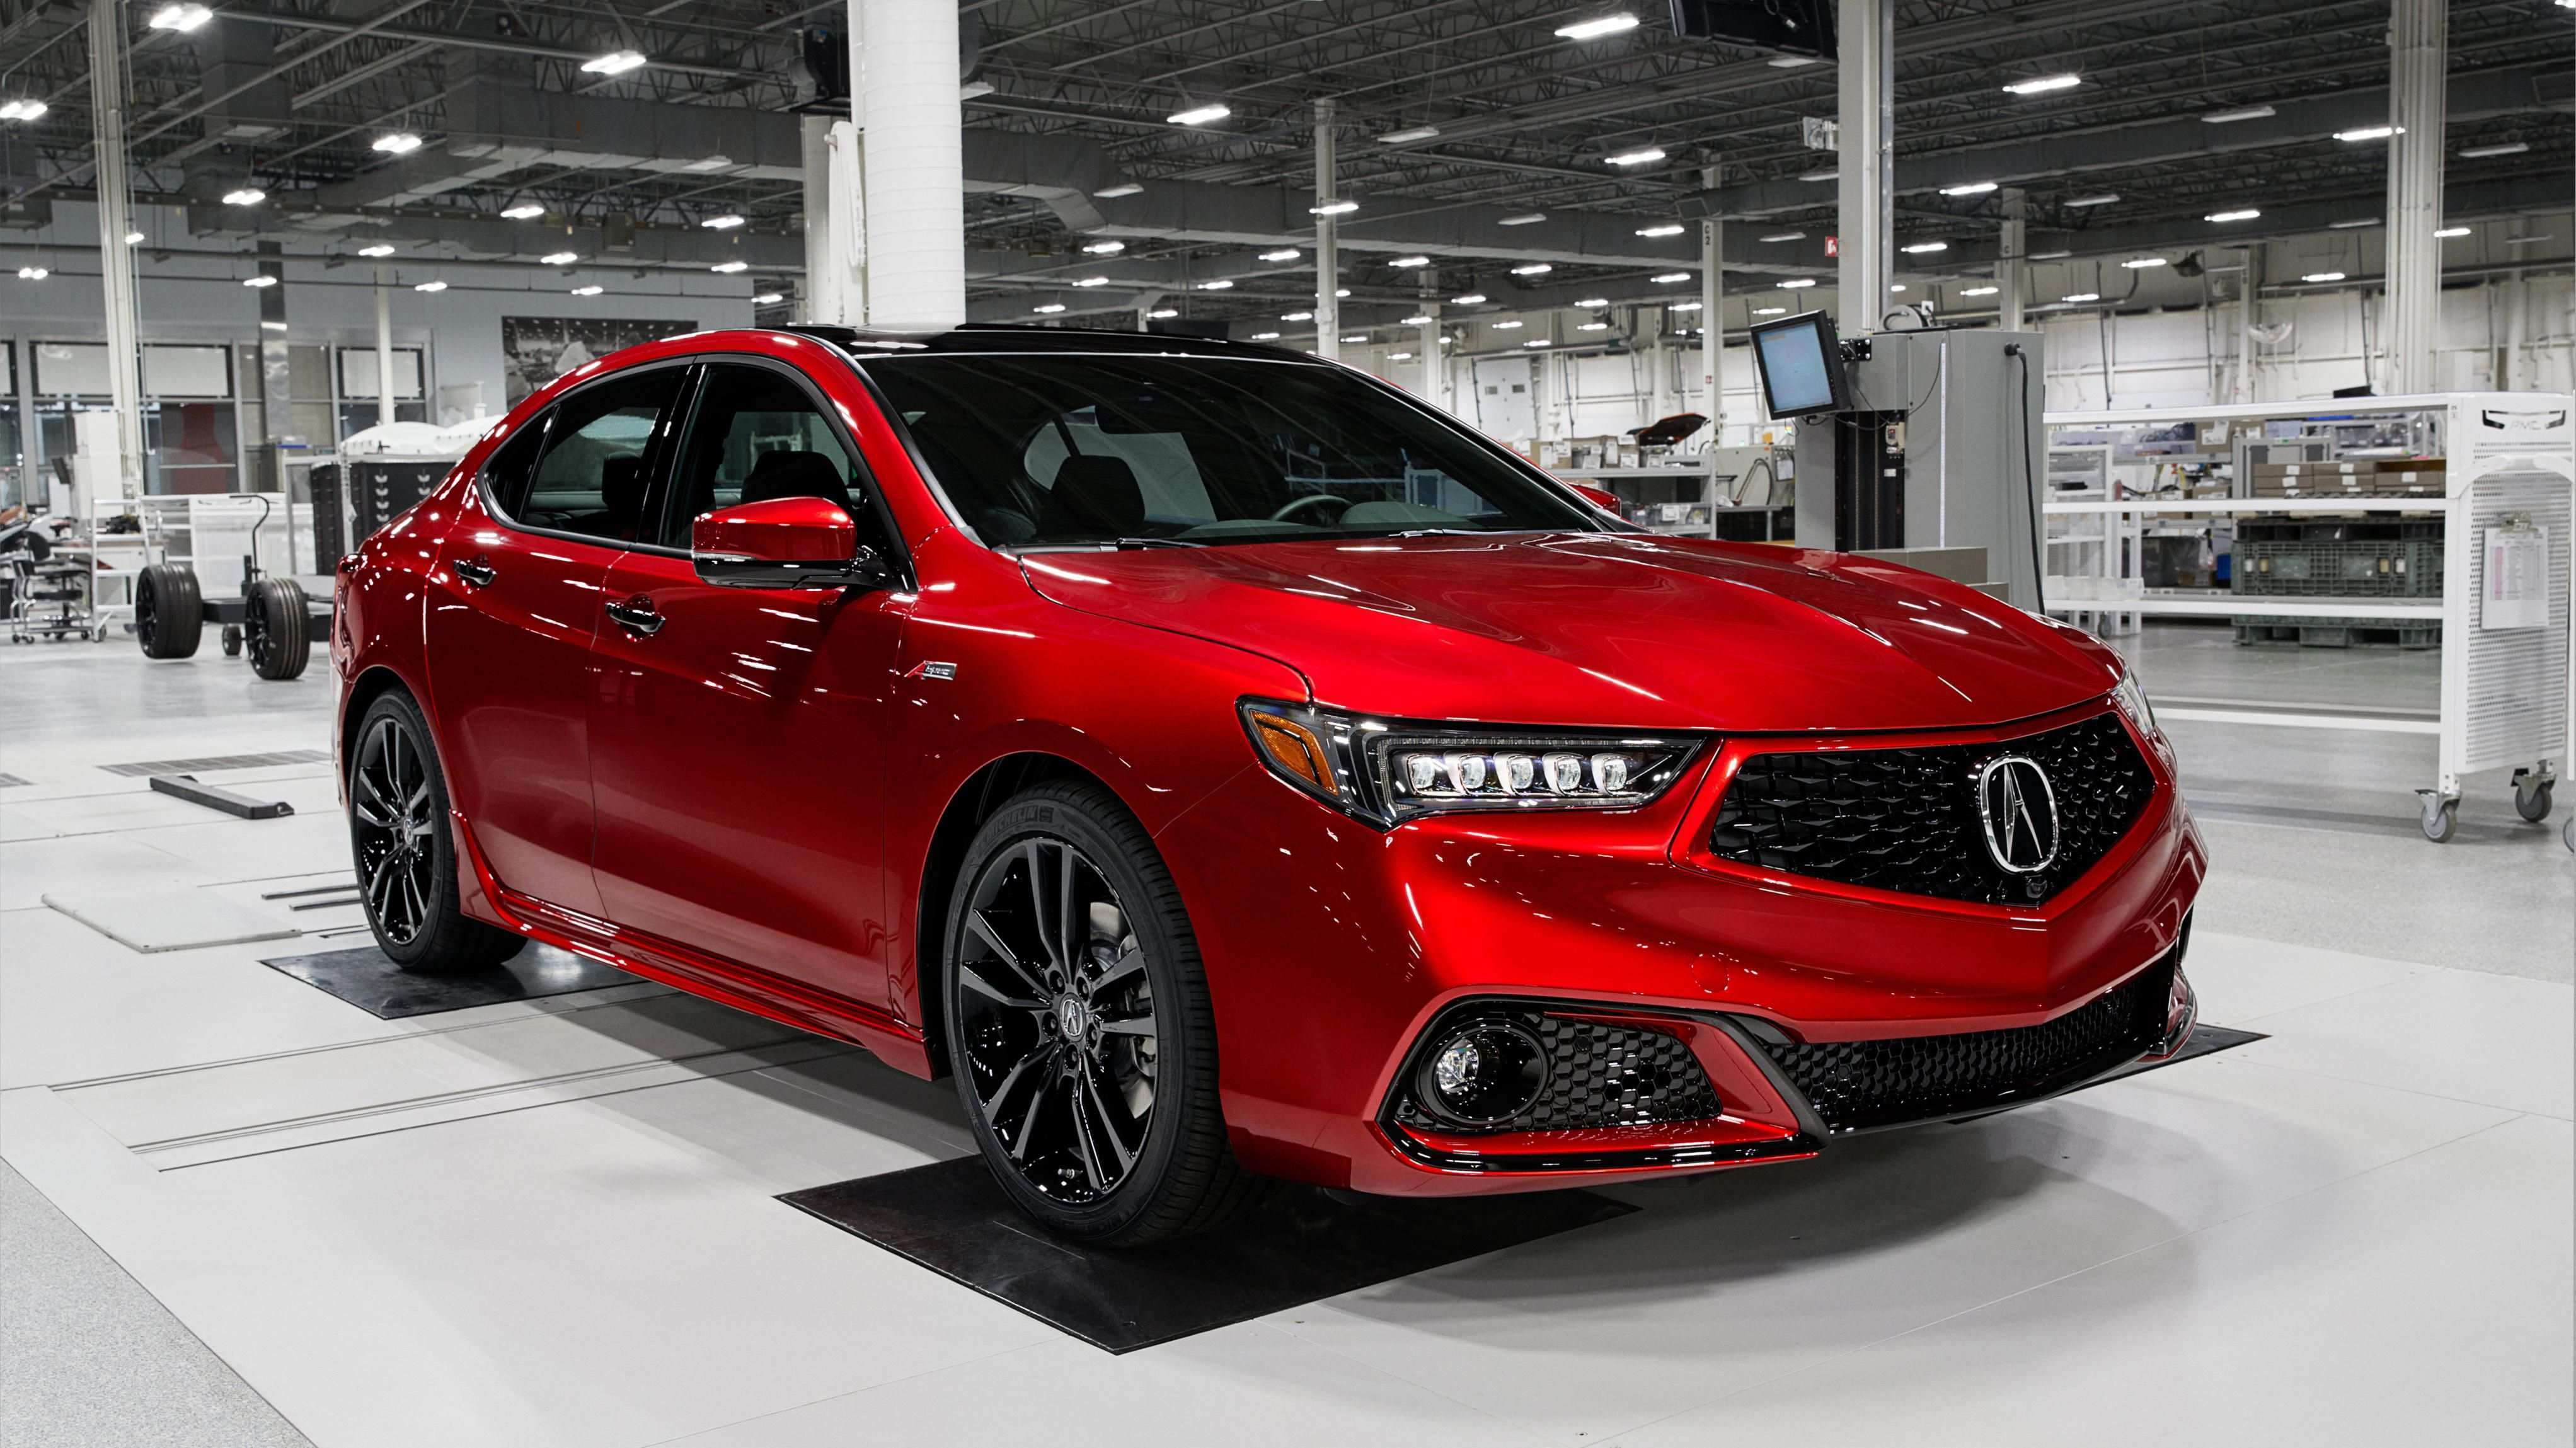 45 A Acura S Type 2020 Price And Release Date